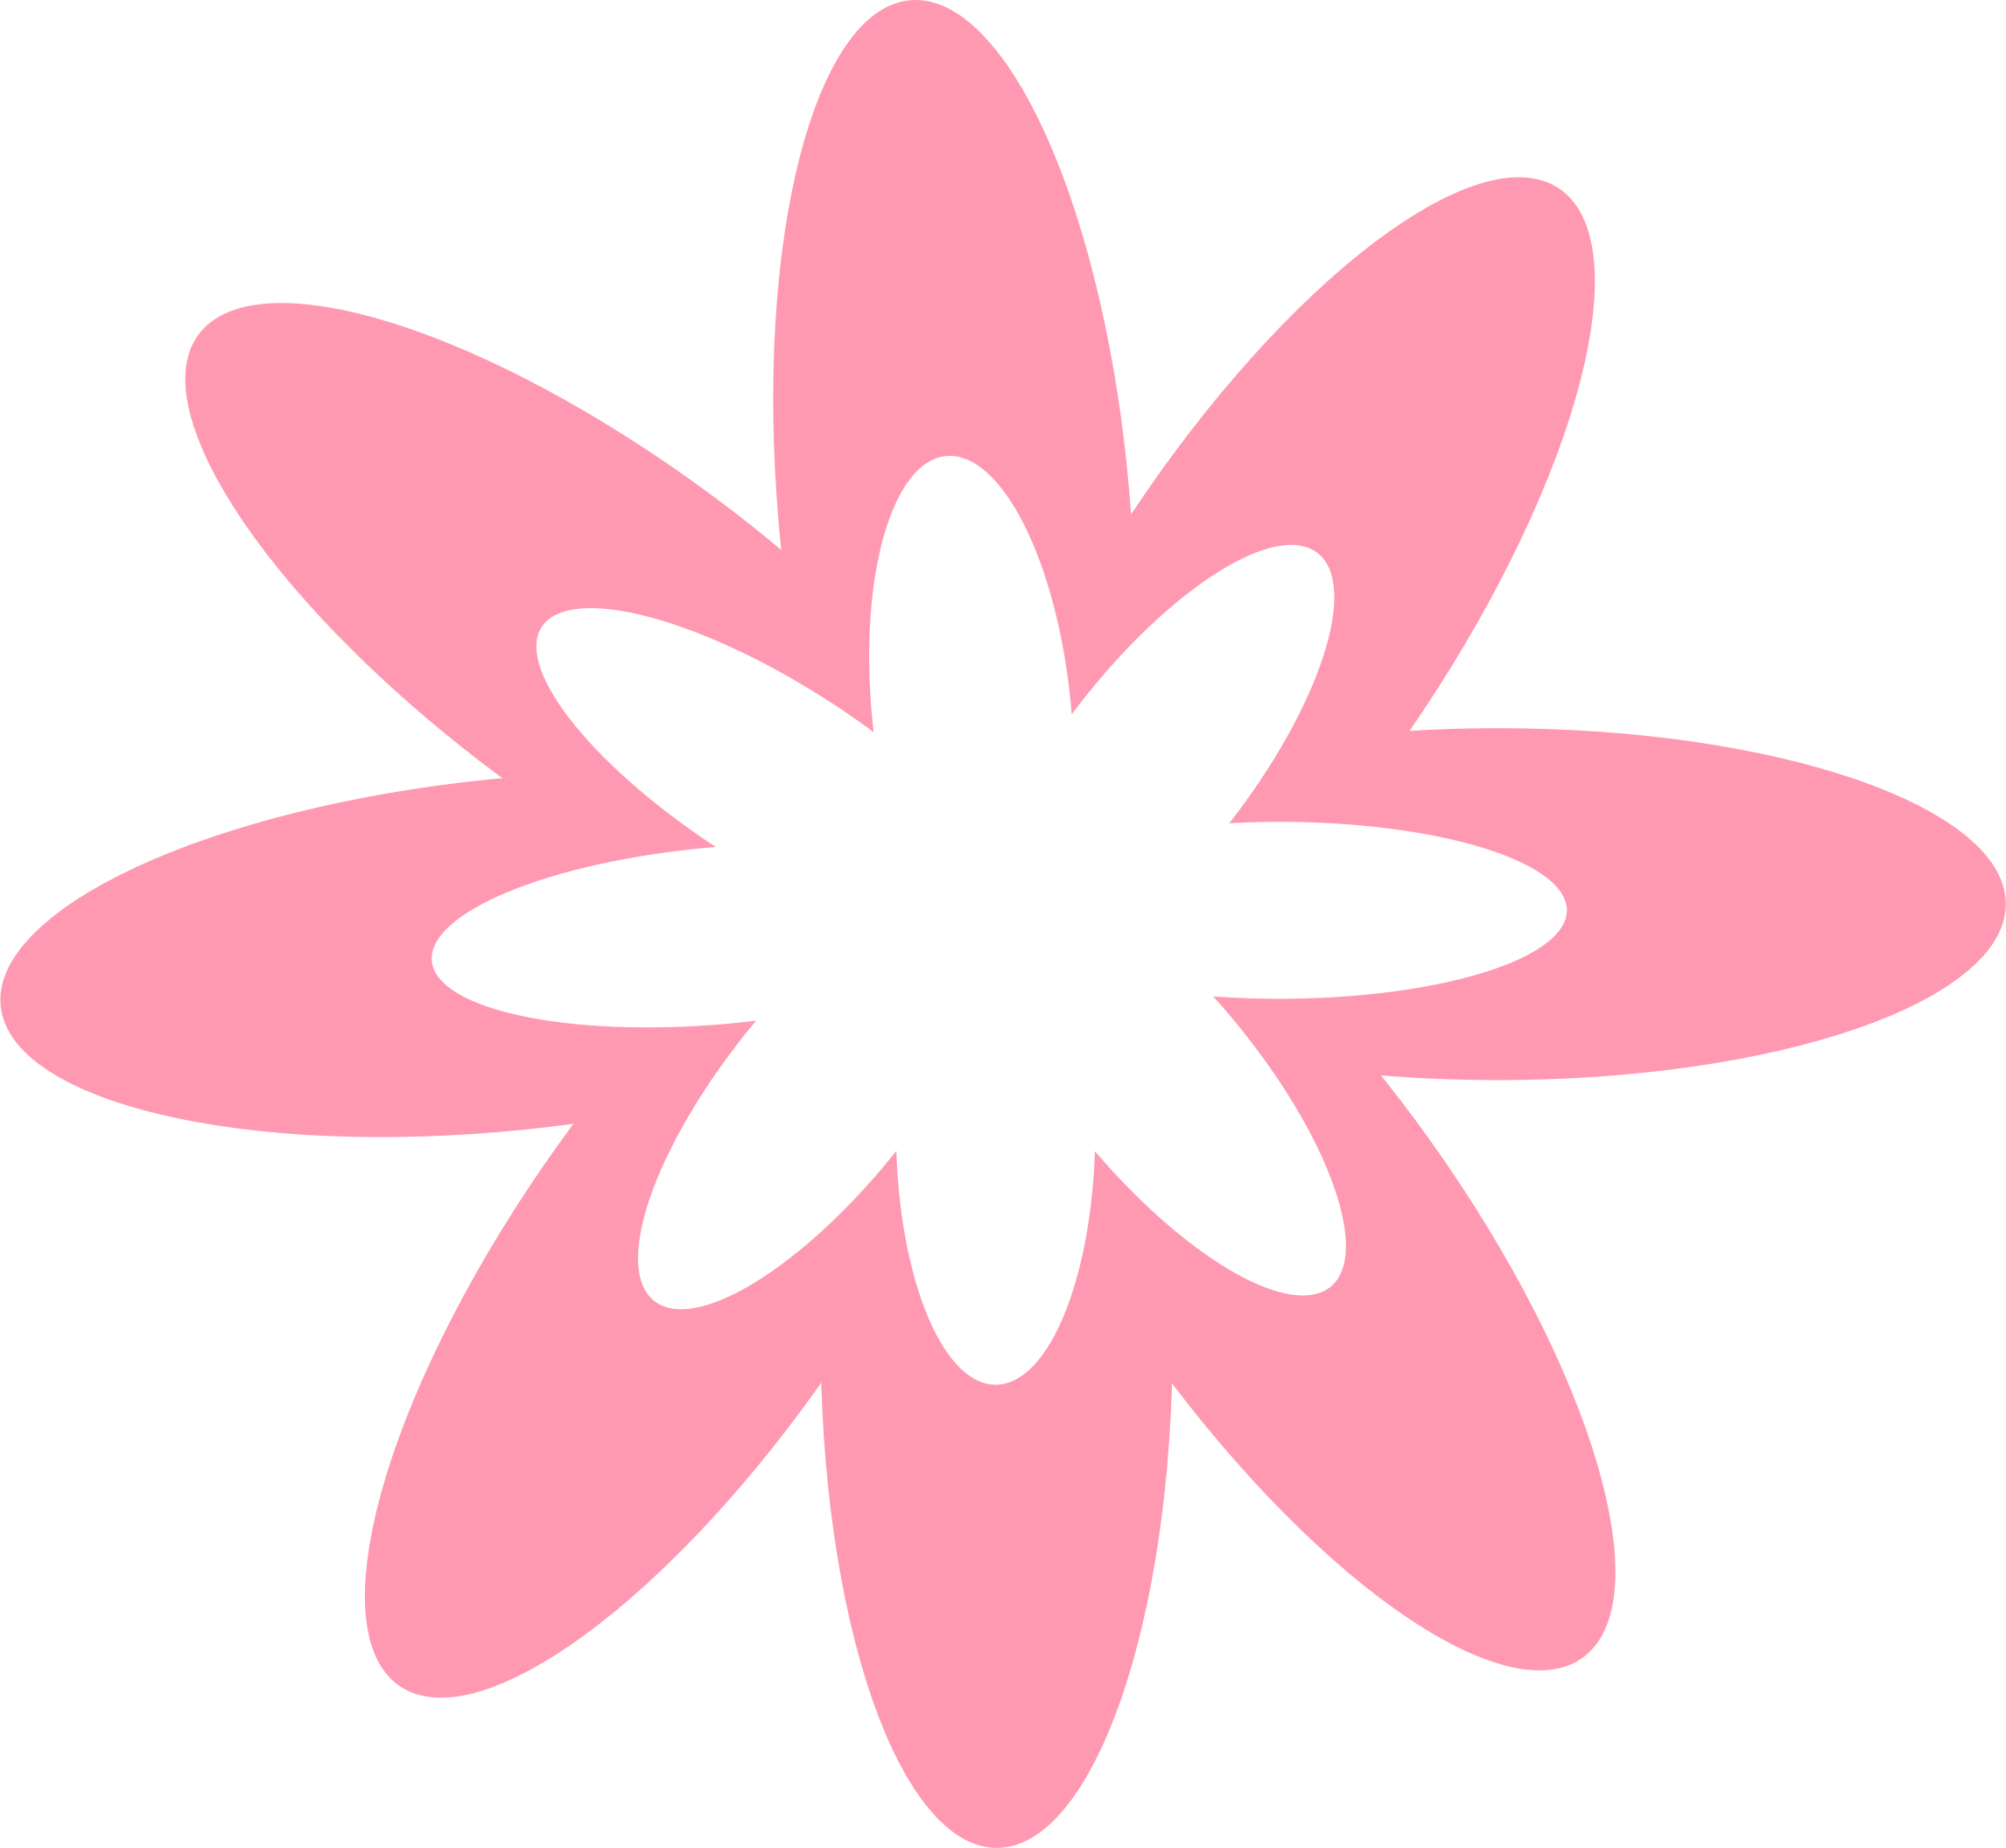 This Free Icons Png Design Of Pink Burst Flower Hdpng.com  - Flower Burst, Transparent background PNG HD thumbnail